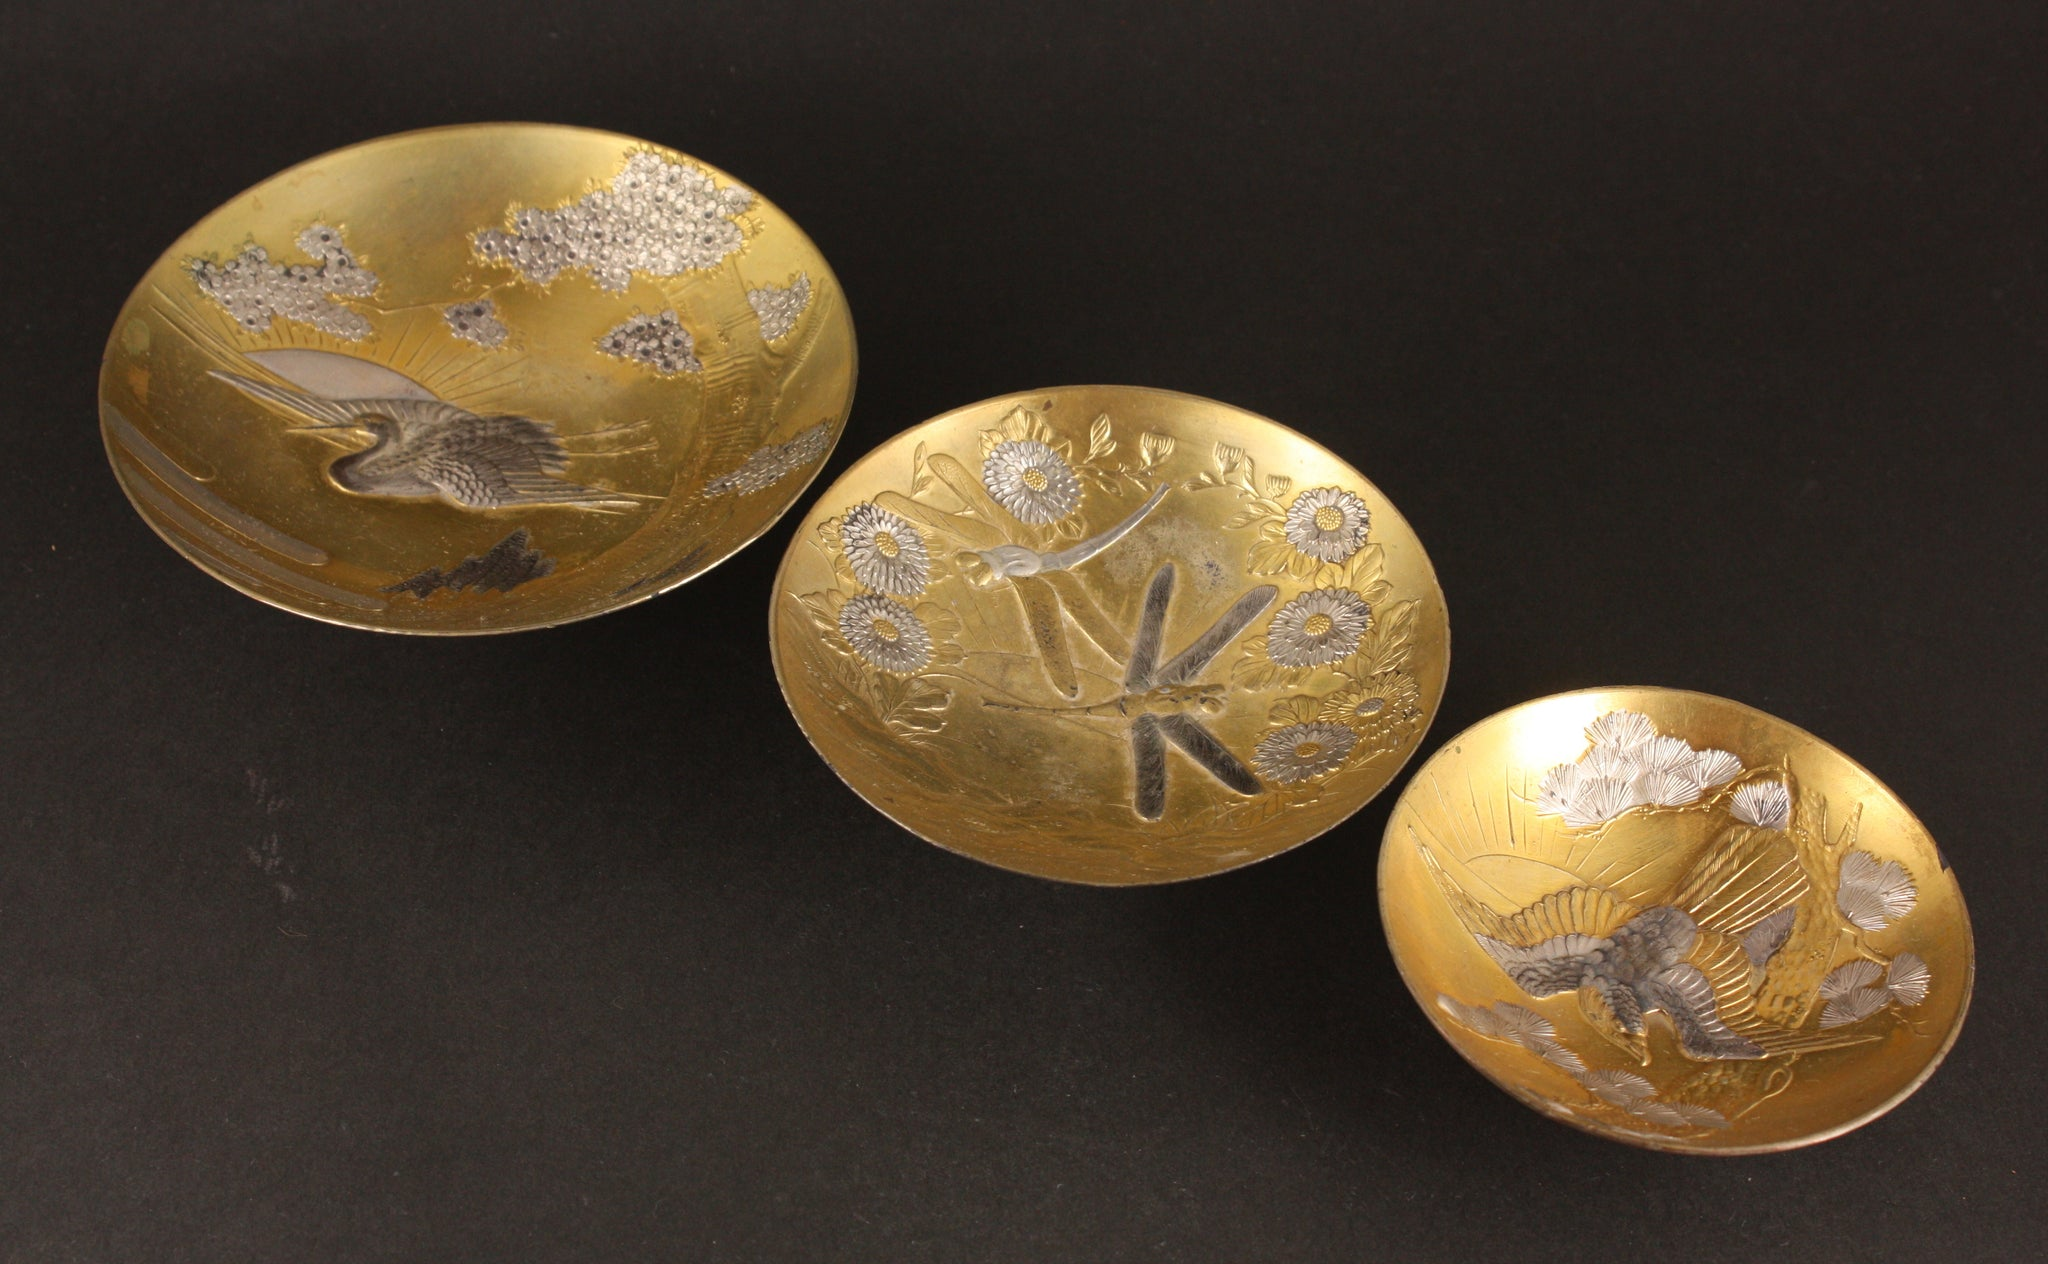 Exquisite Russo Japanese War Victory Metal Sake Cup Set